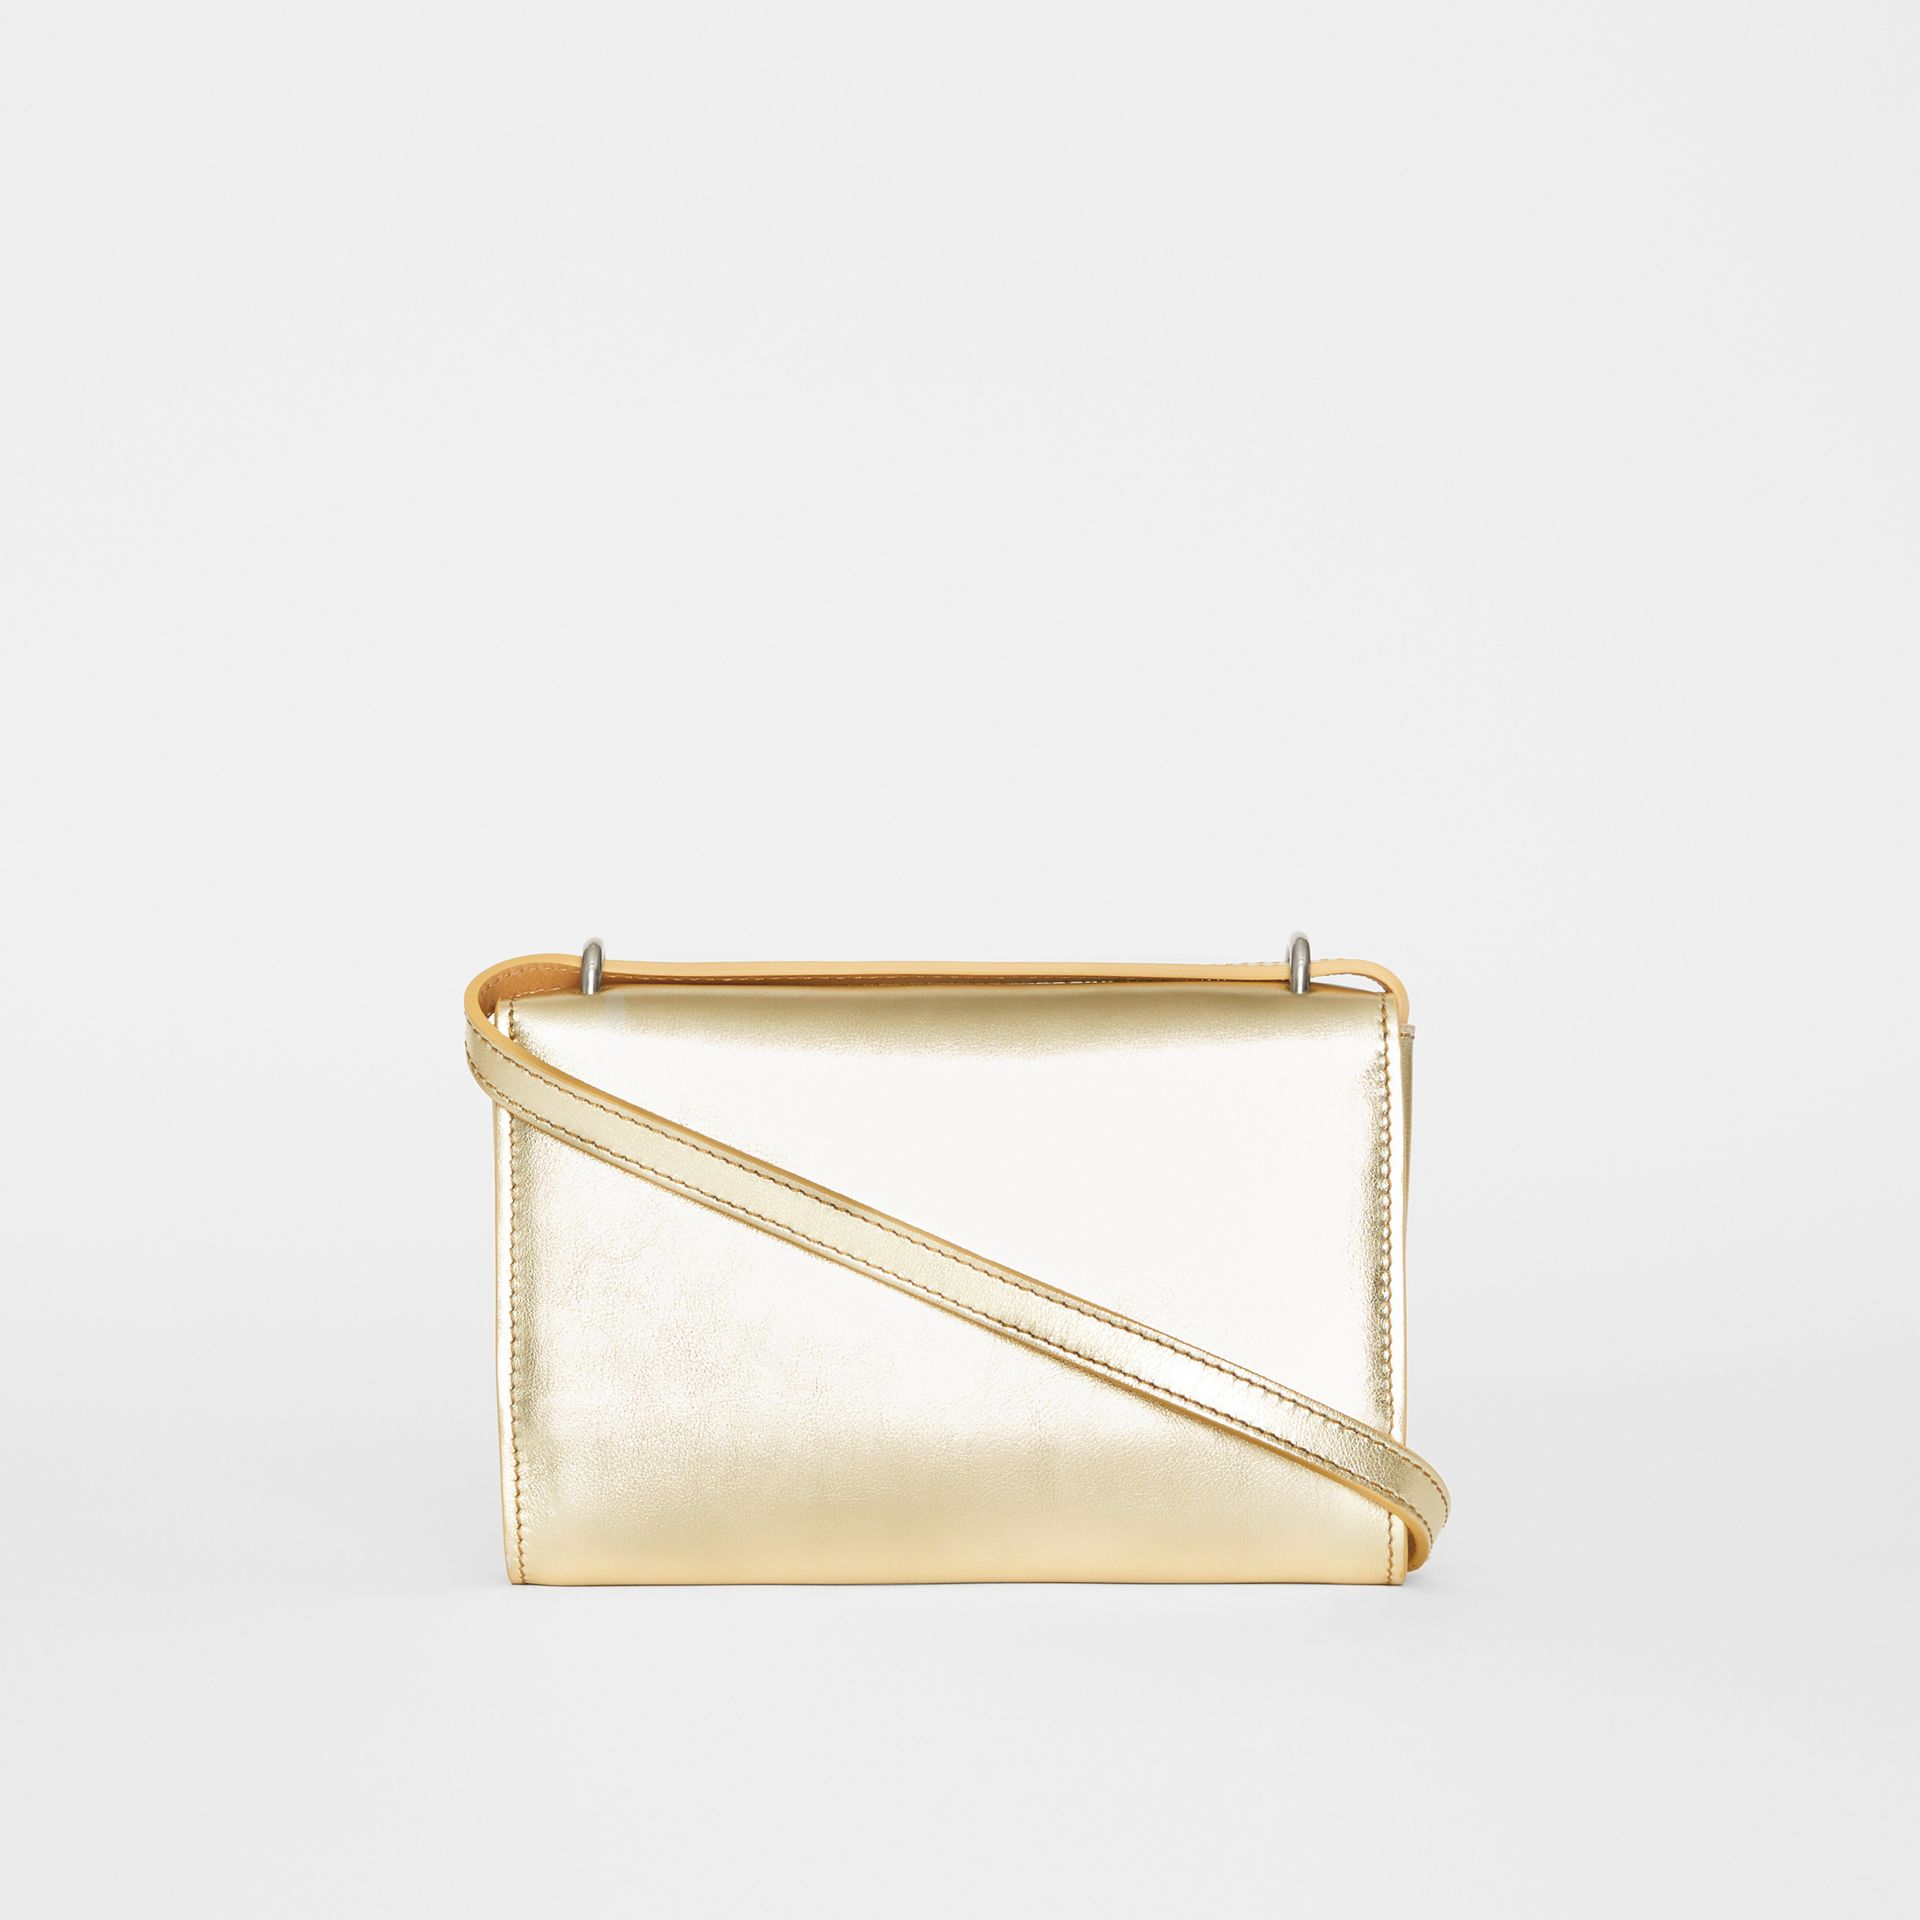 Embossed Crest Metallic Leather Wallet with Detachable Strap in Gold - Women | Burberry United States - gallery image 5